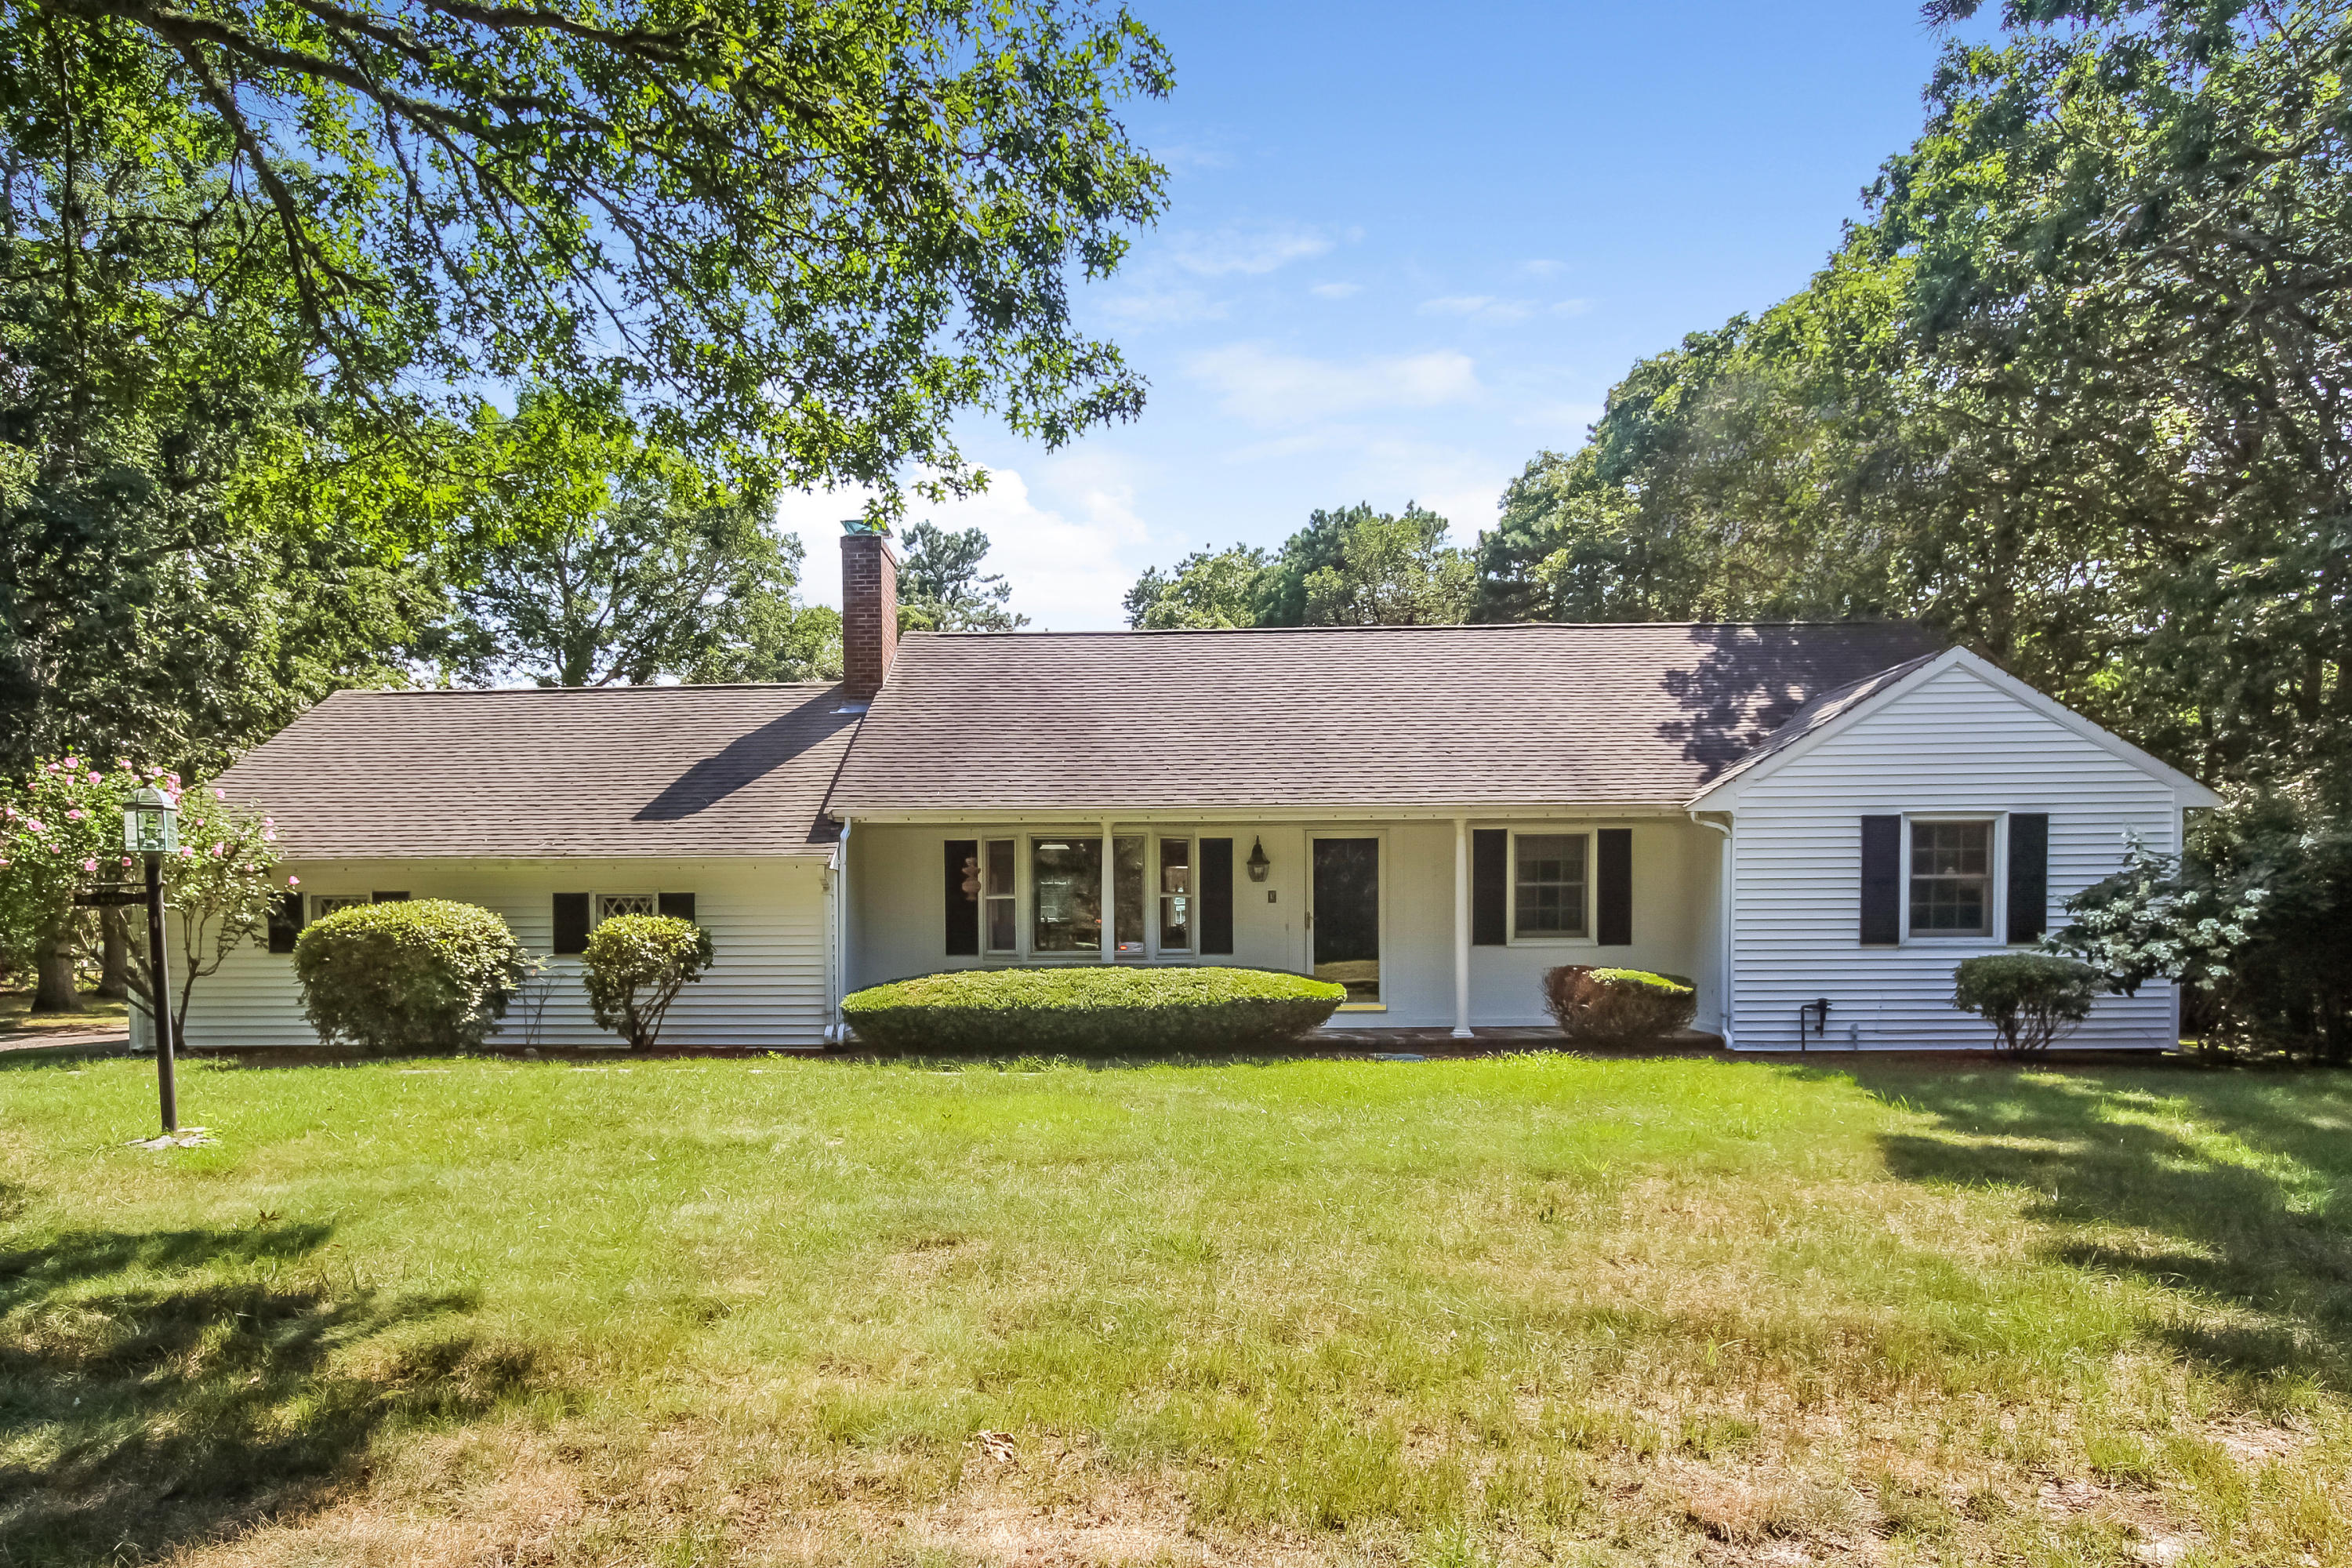 click here to view more information about 3  Fairway Drive, Dennis